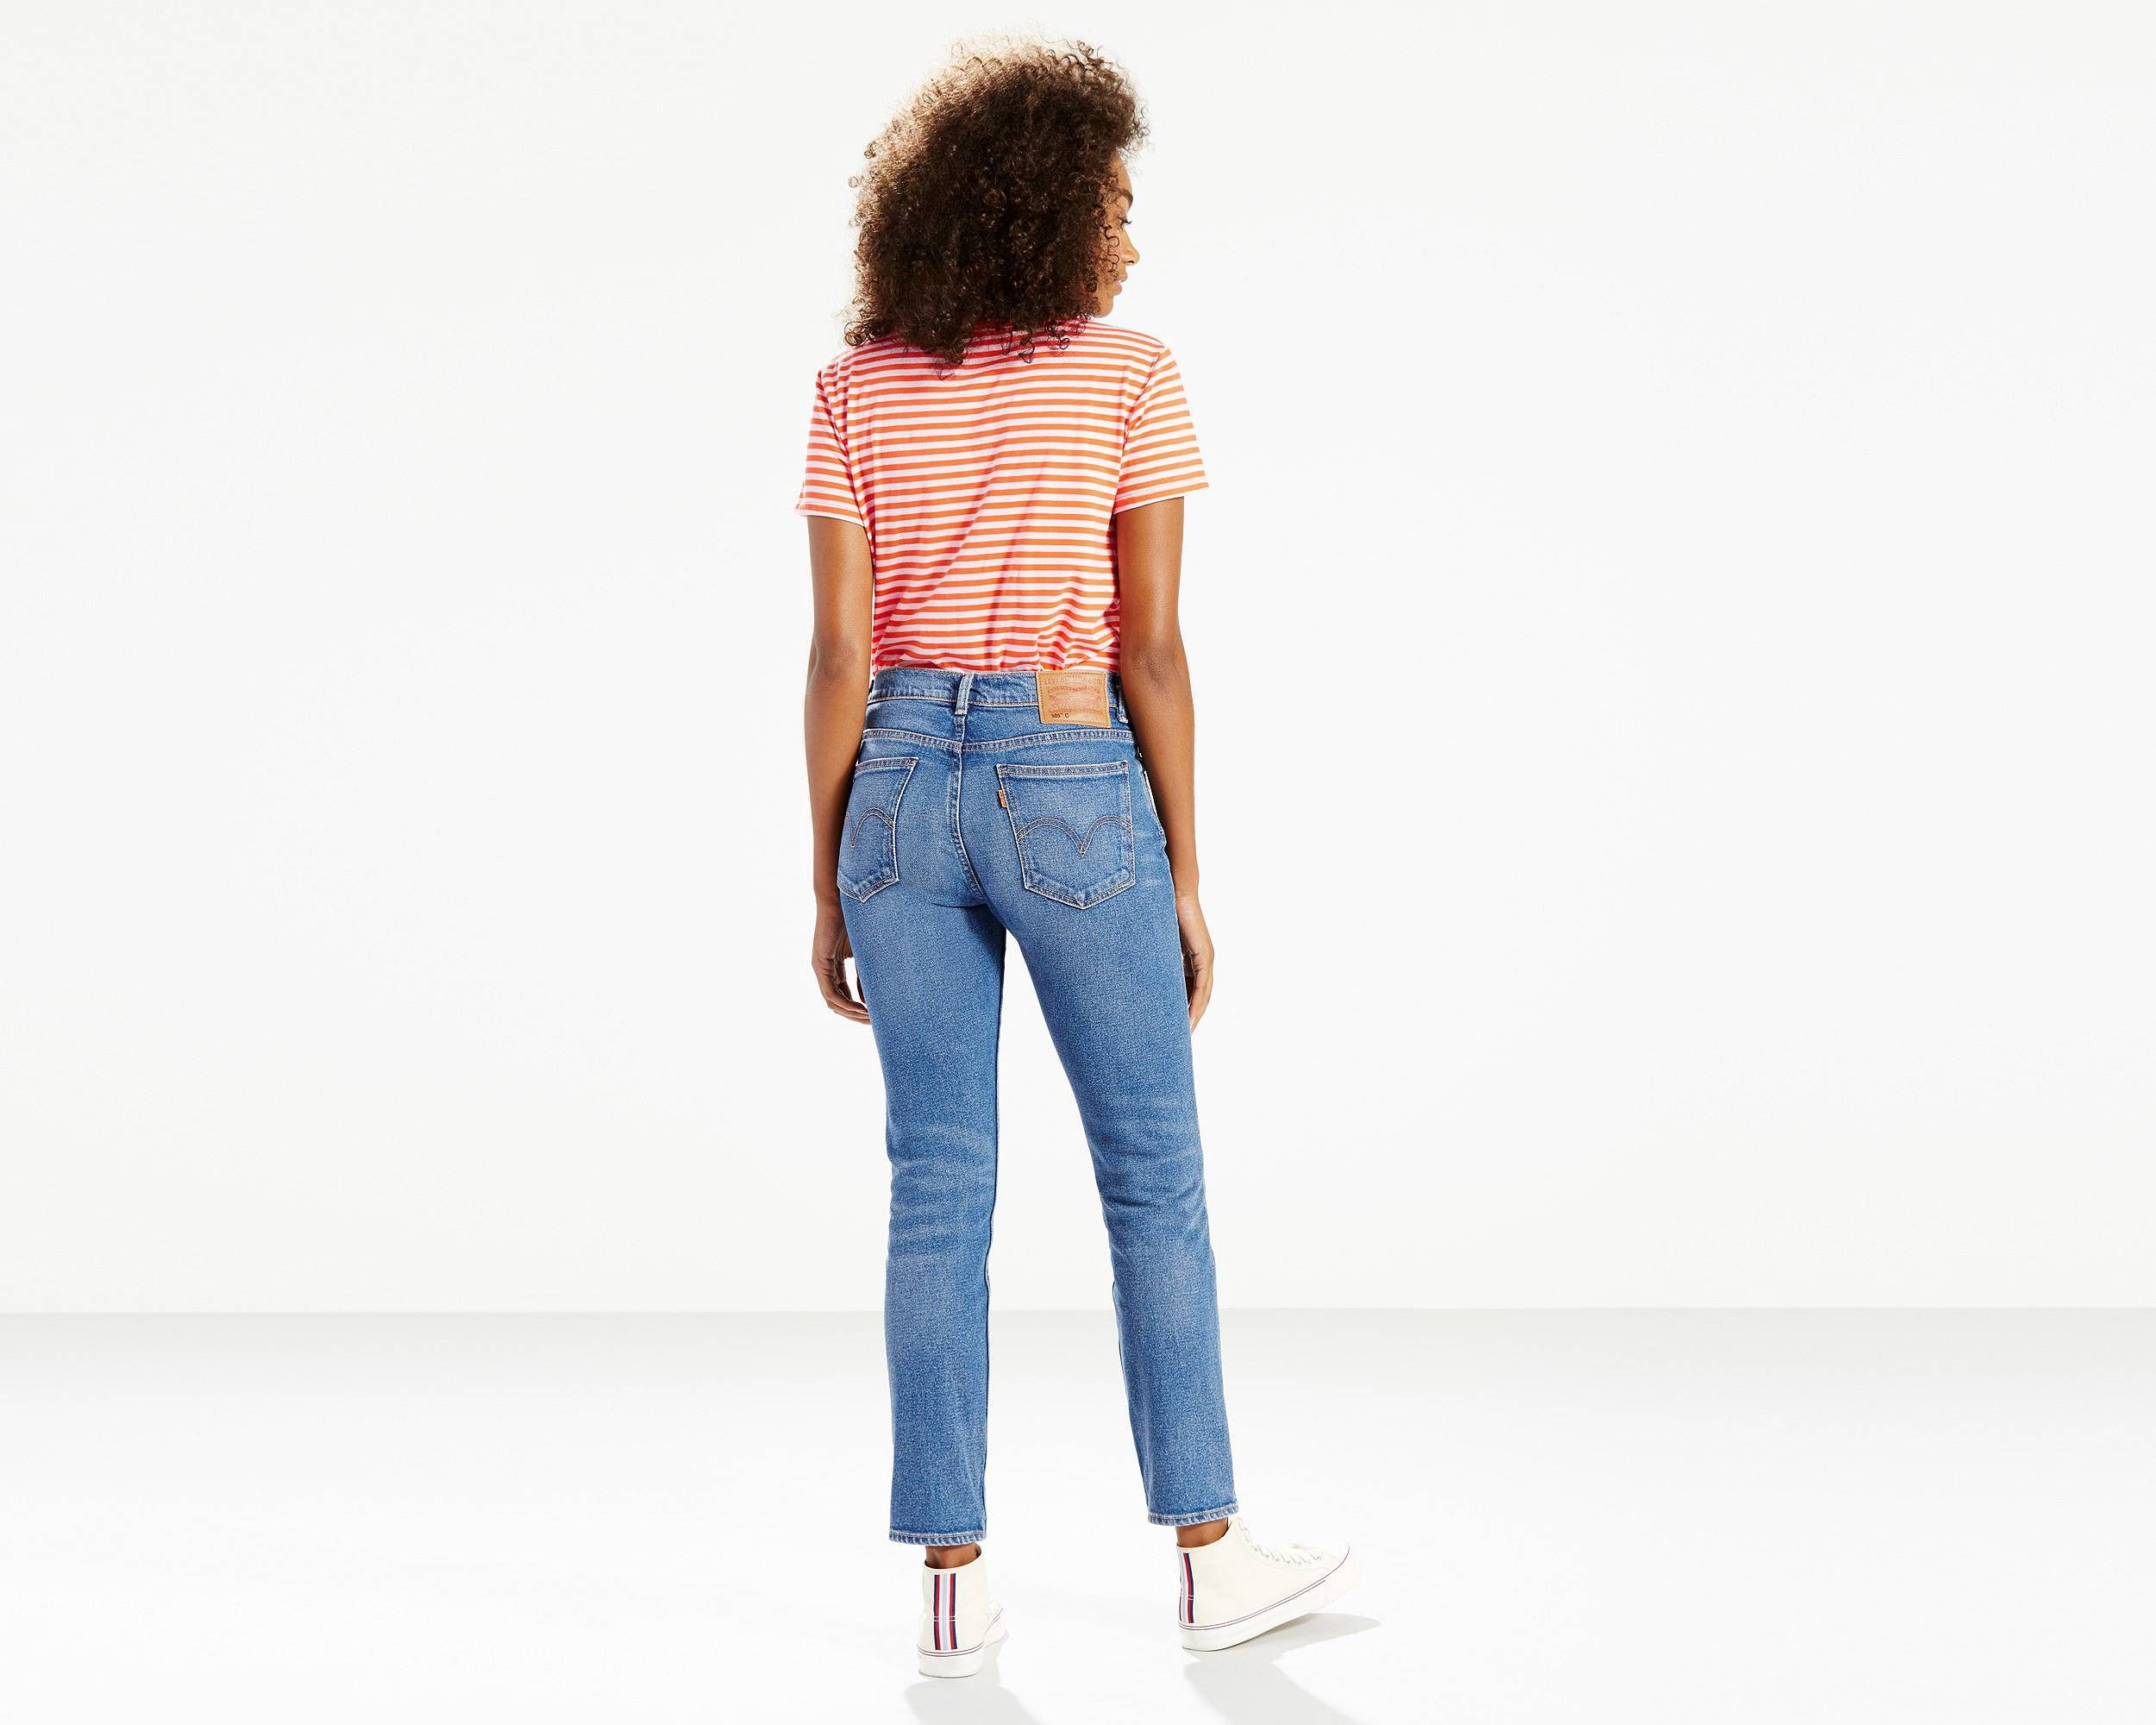 505™C CROPPED JEANS - BLUE CHEER by Levi s  b50894e40fe